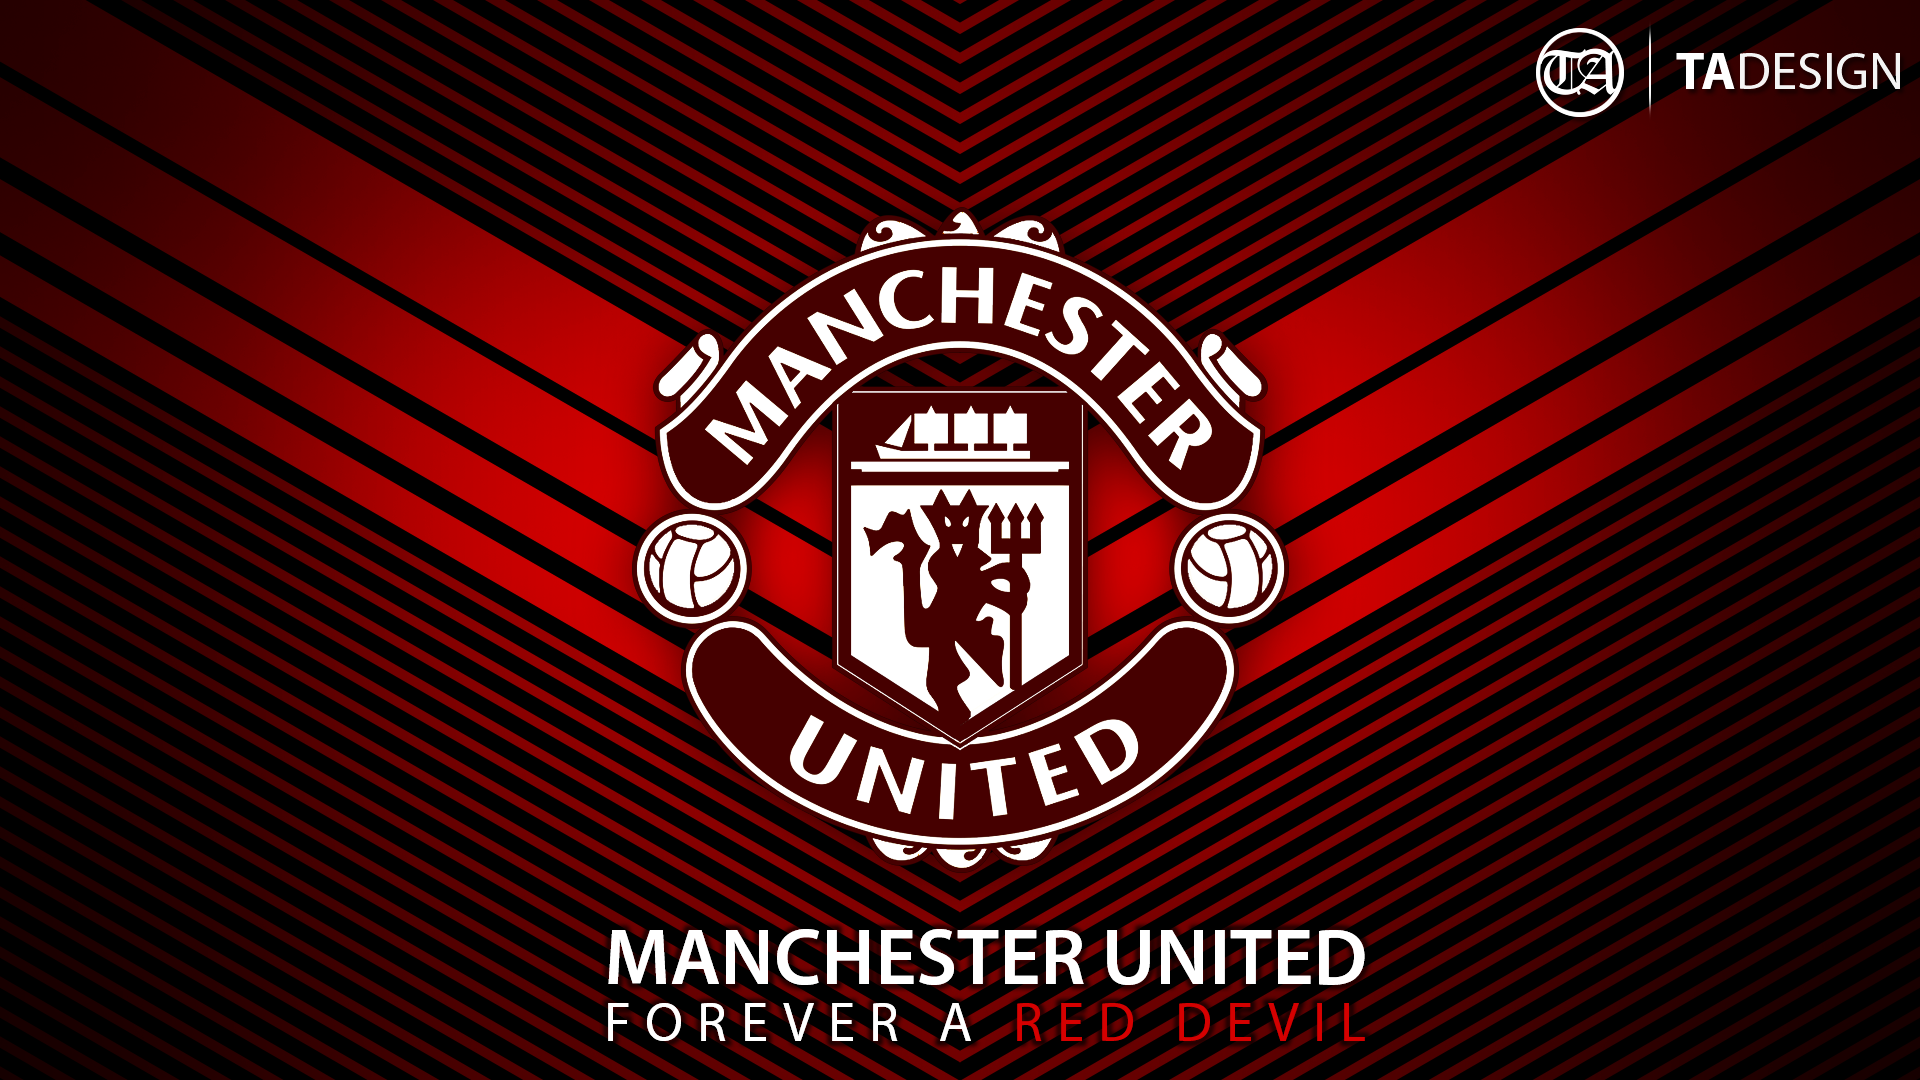 4 Man Utd Wallpaper Forever A Red Devil By Tauseen On Deviantart